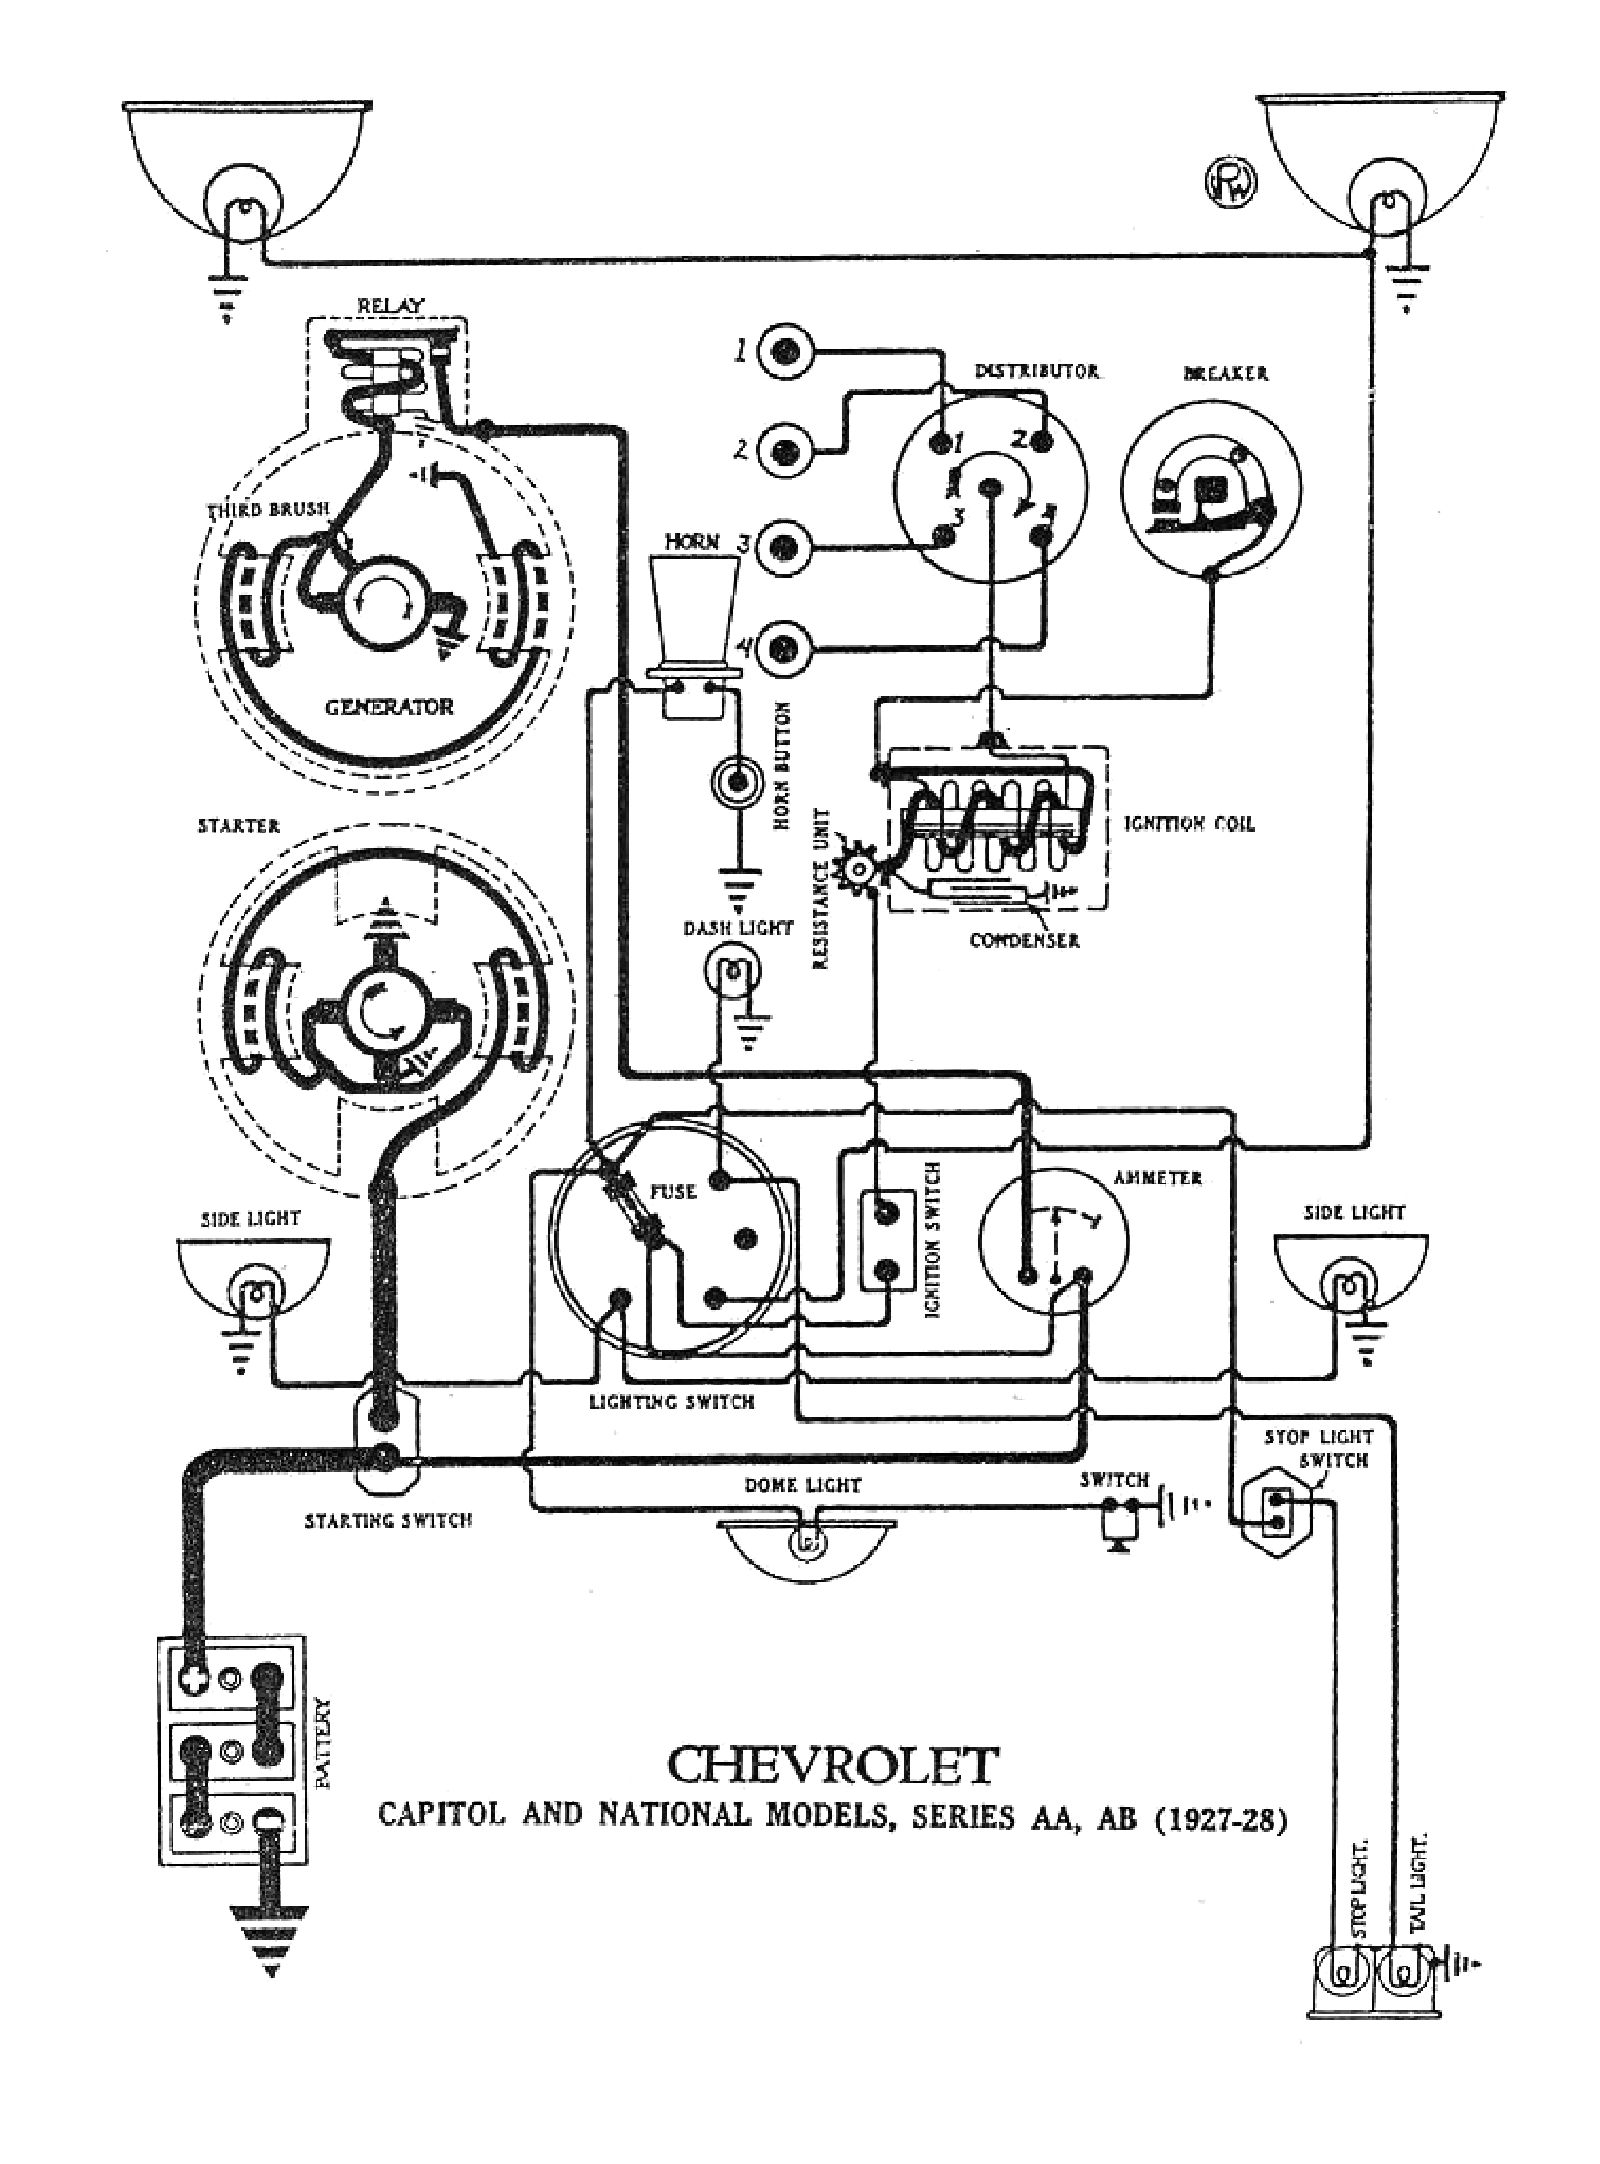 2728wiring chevy wiring diagrams modem wiring diagram at mifinder.co